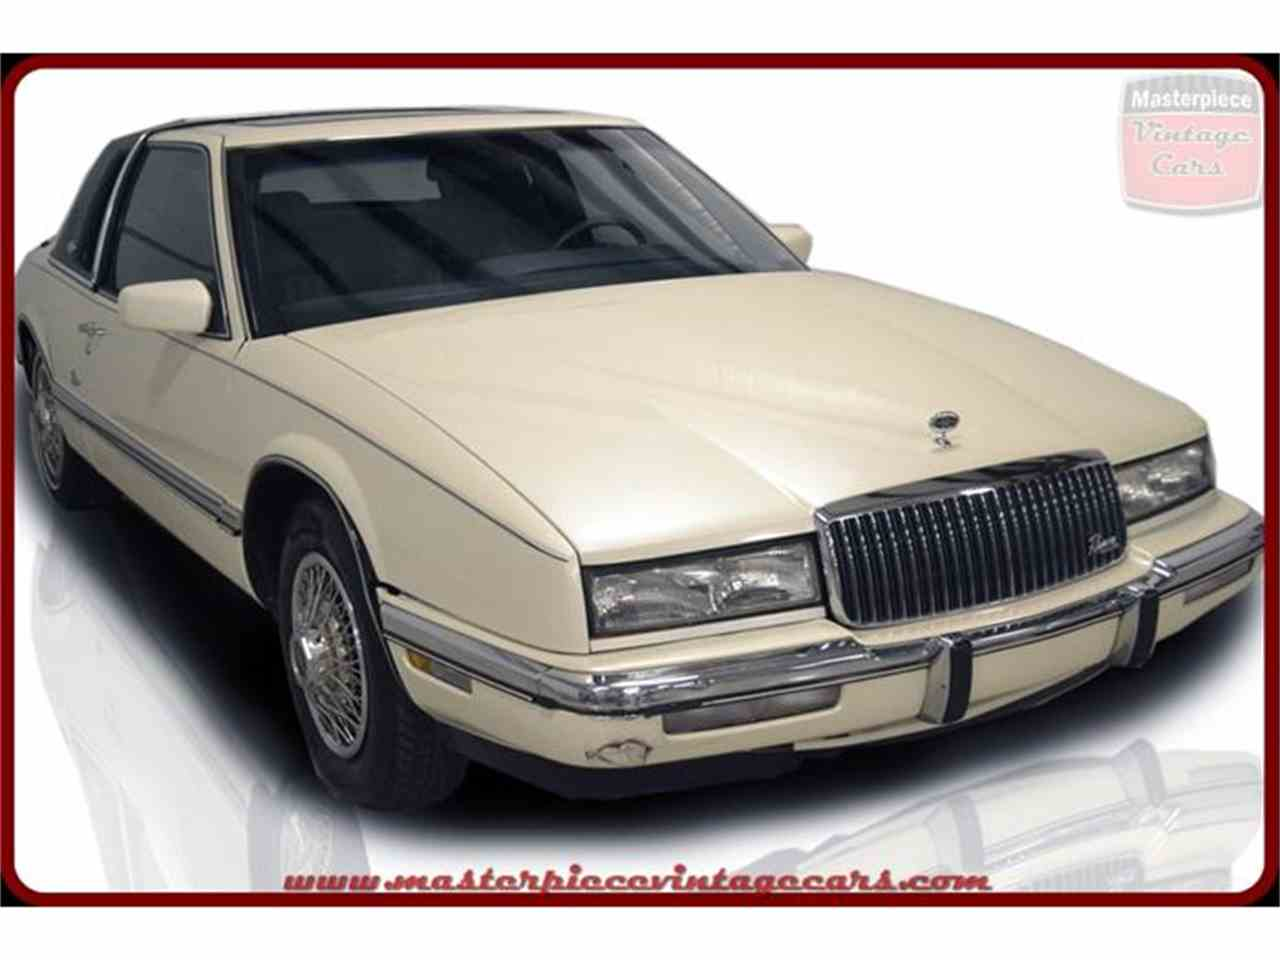 Large Picture of 1990 Buick Riviera located in Indiana - $5,950.00 Offered by Masterpiece Vintage Cars - IRZC